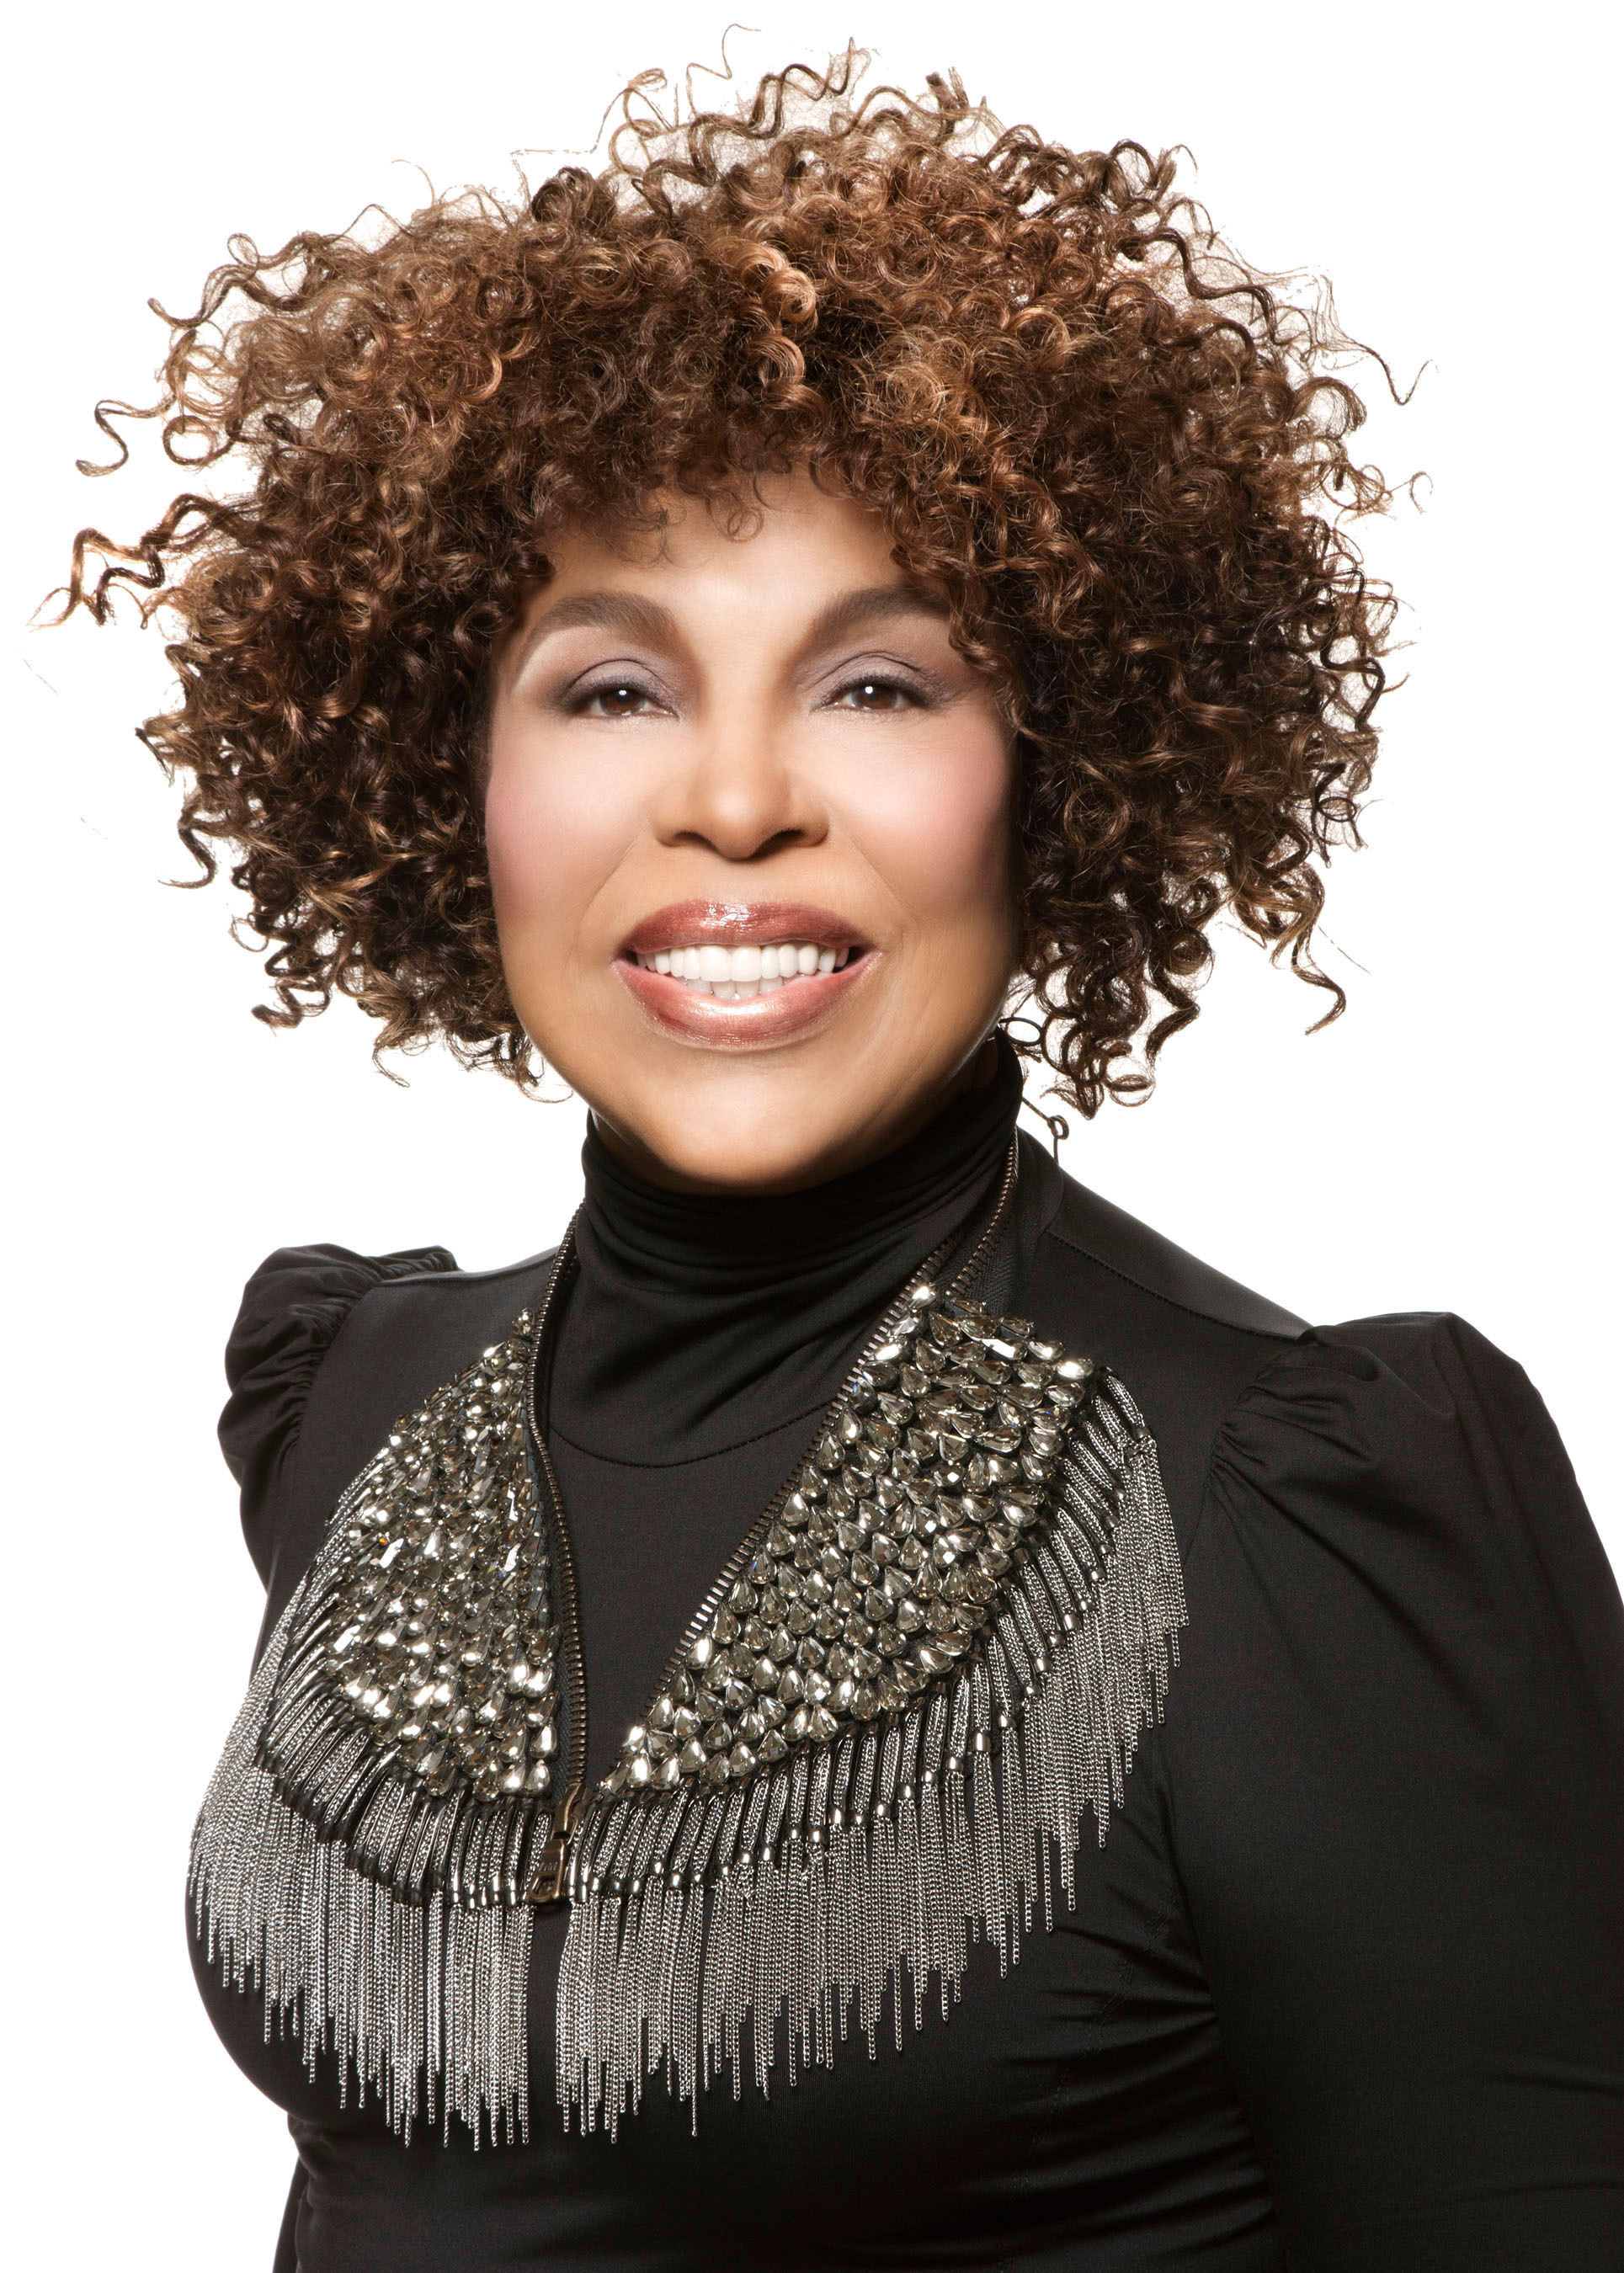 Roberta Flack To Perform At Awards Gala In New York